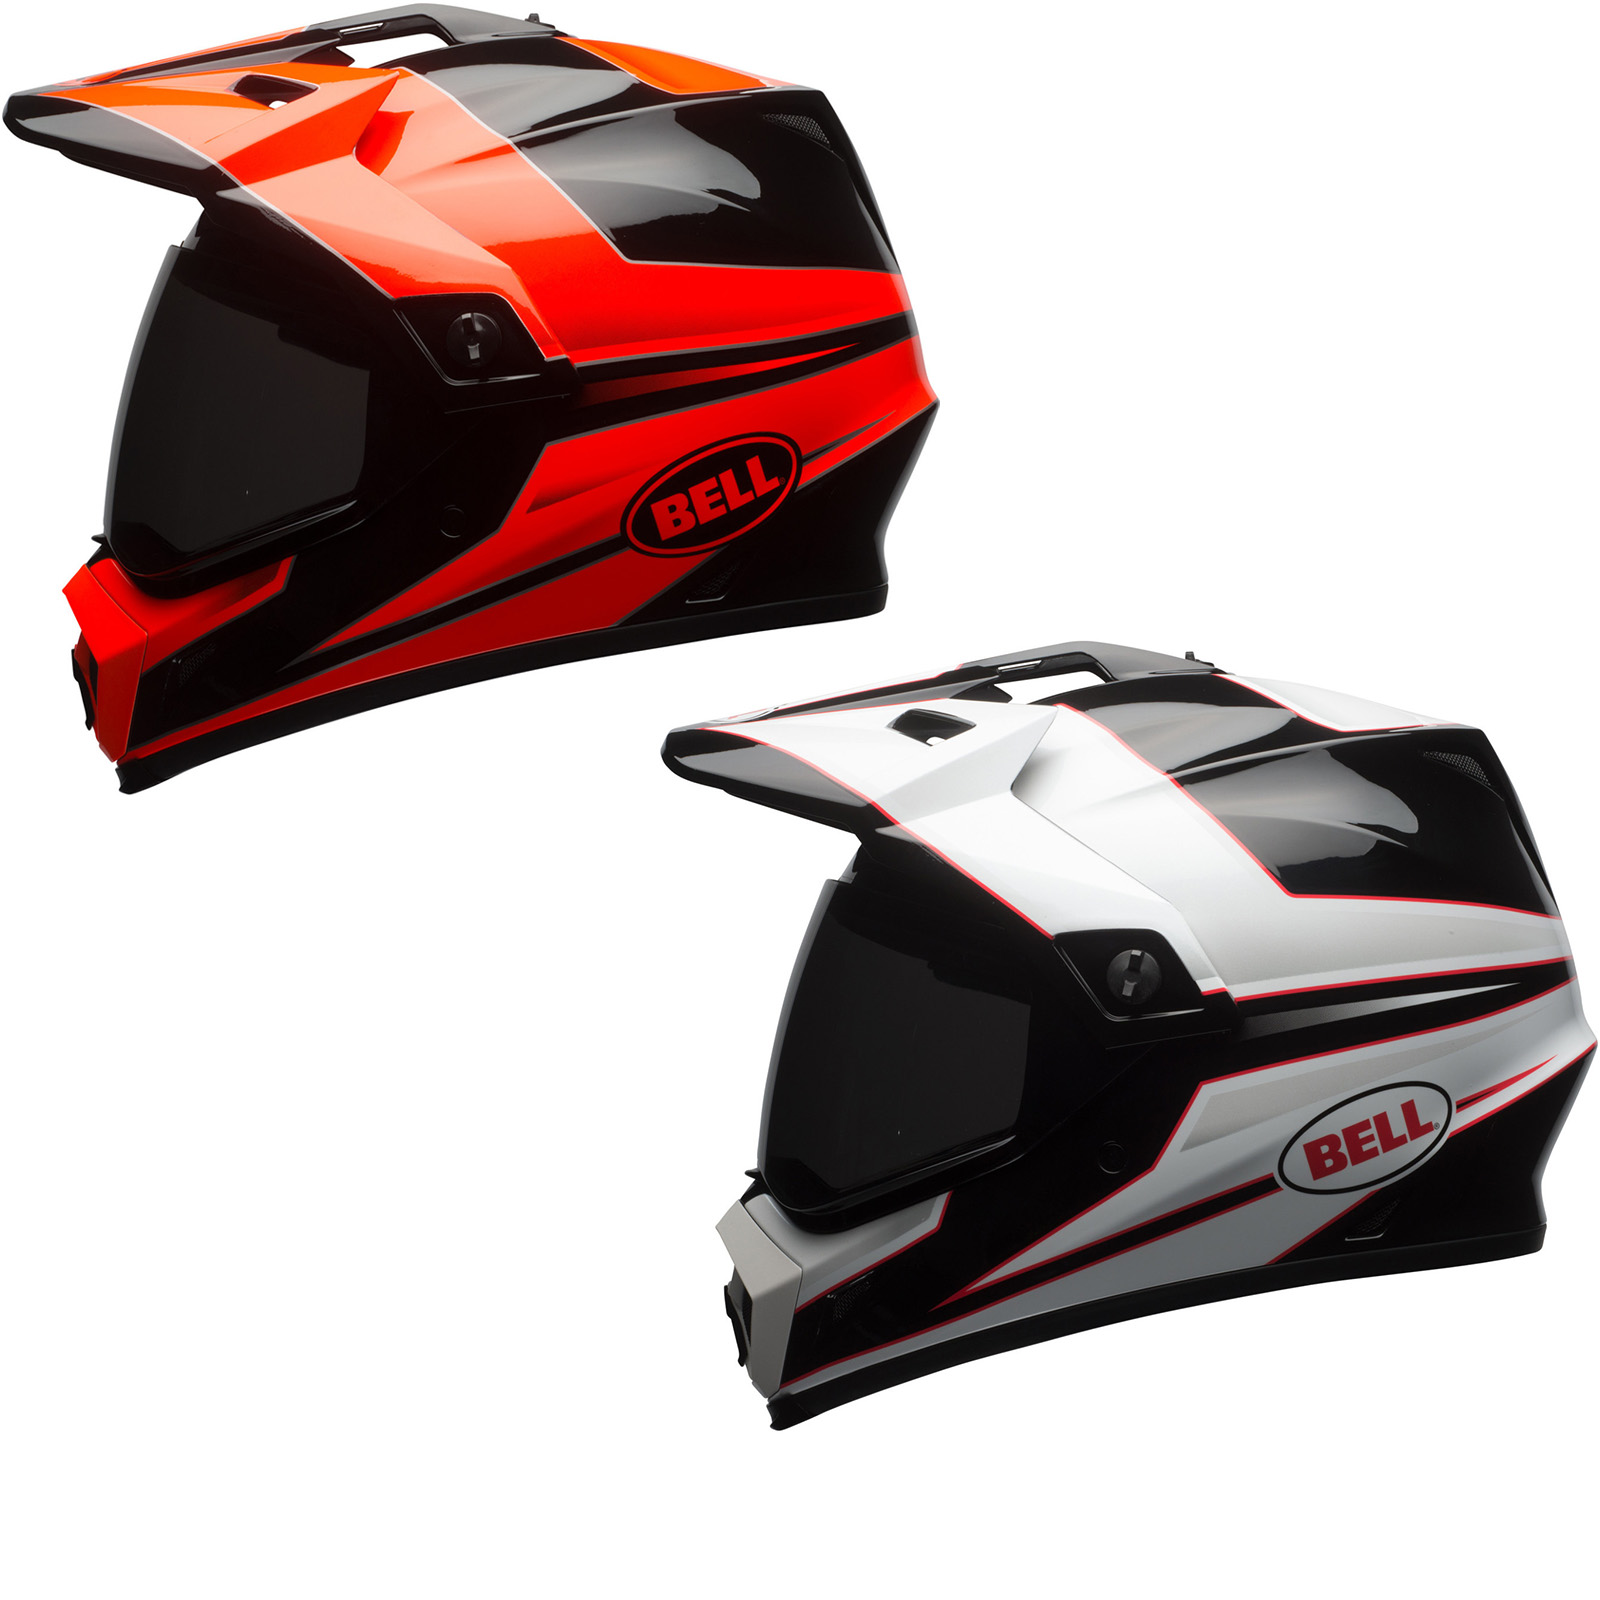 bell mx 9 adventure mips stryker dual sport helmet new arrivals. Black Bedroom Furniture Sets. Home Design Ideas